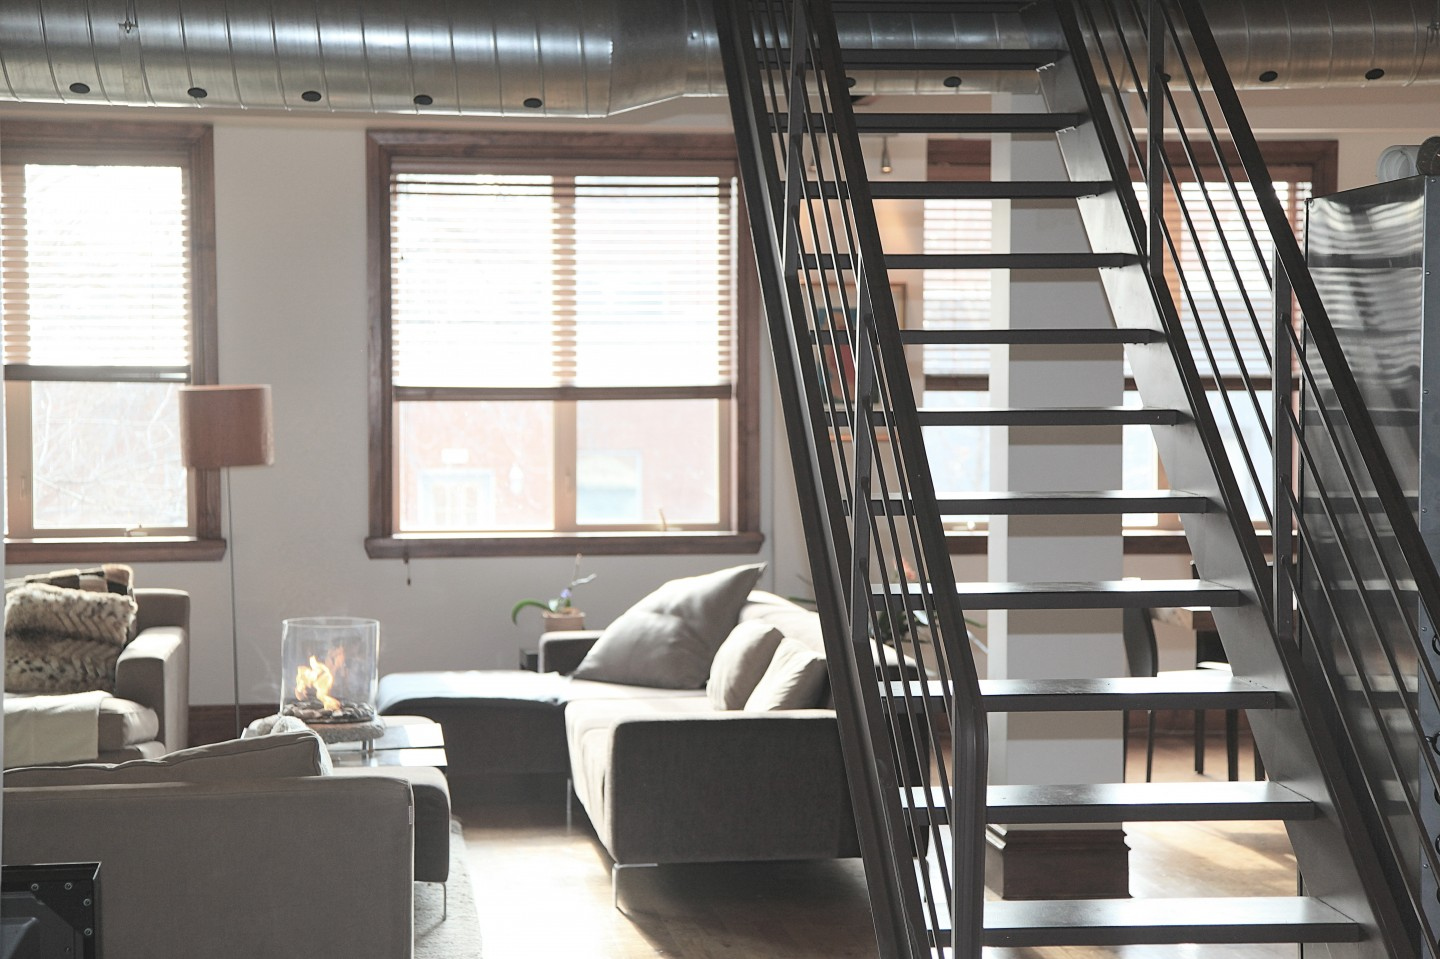 Life-of-Pix-free-stock-photo-habitation-Loft-1440x959